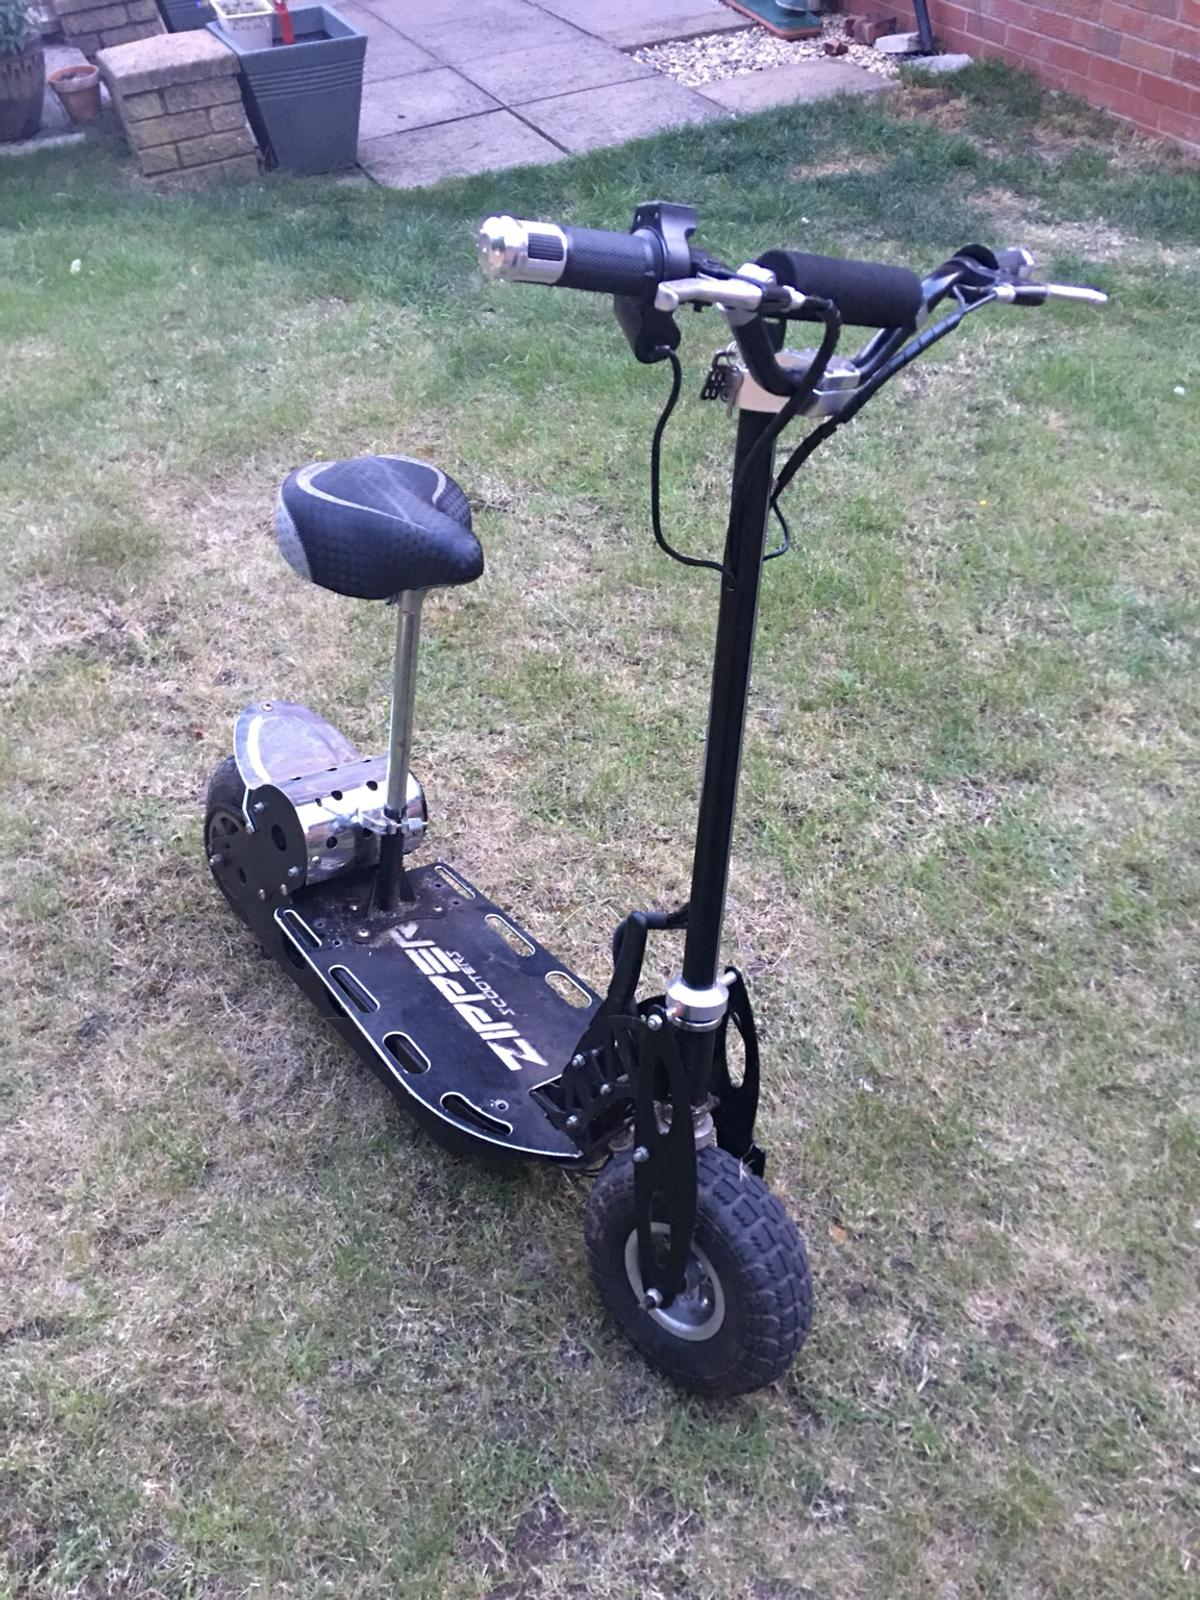 48v 800w electric scooter/ goped in CV32 Warwick for £160 00